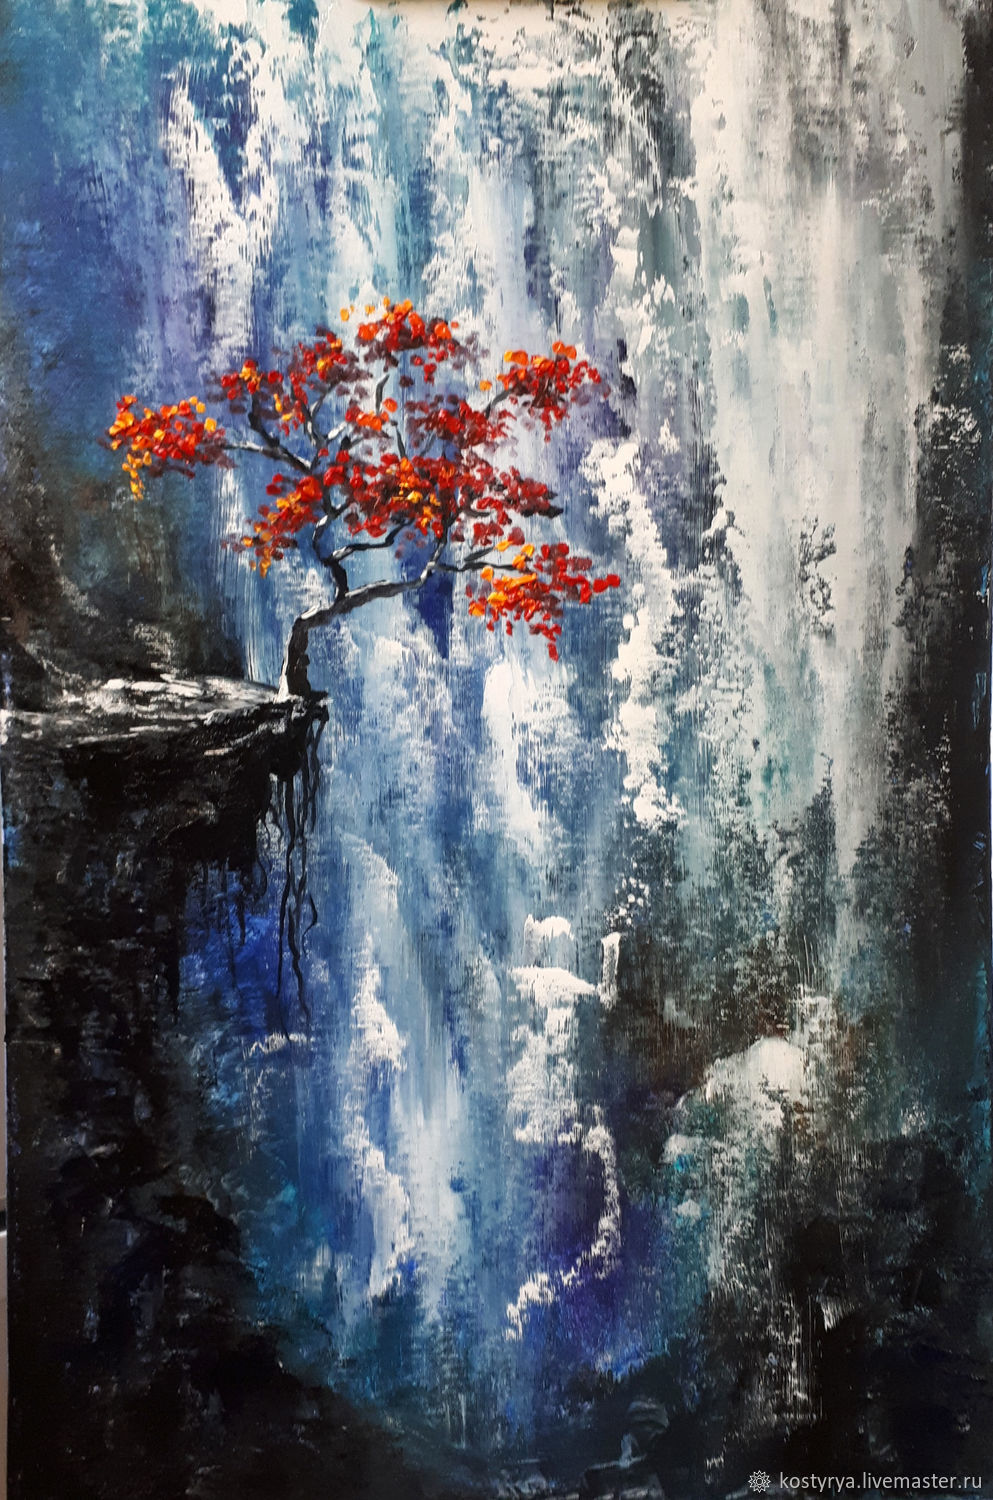 Oil Painting Quot Waterfall Quot Shop Online On Livemaster With